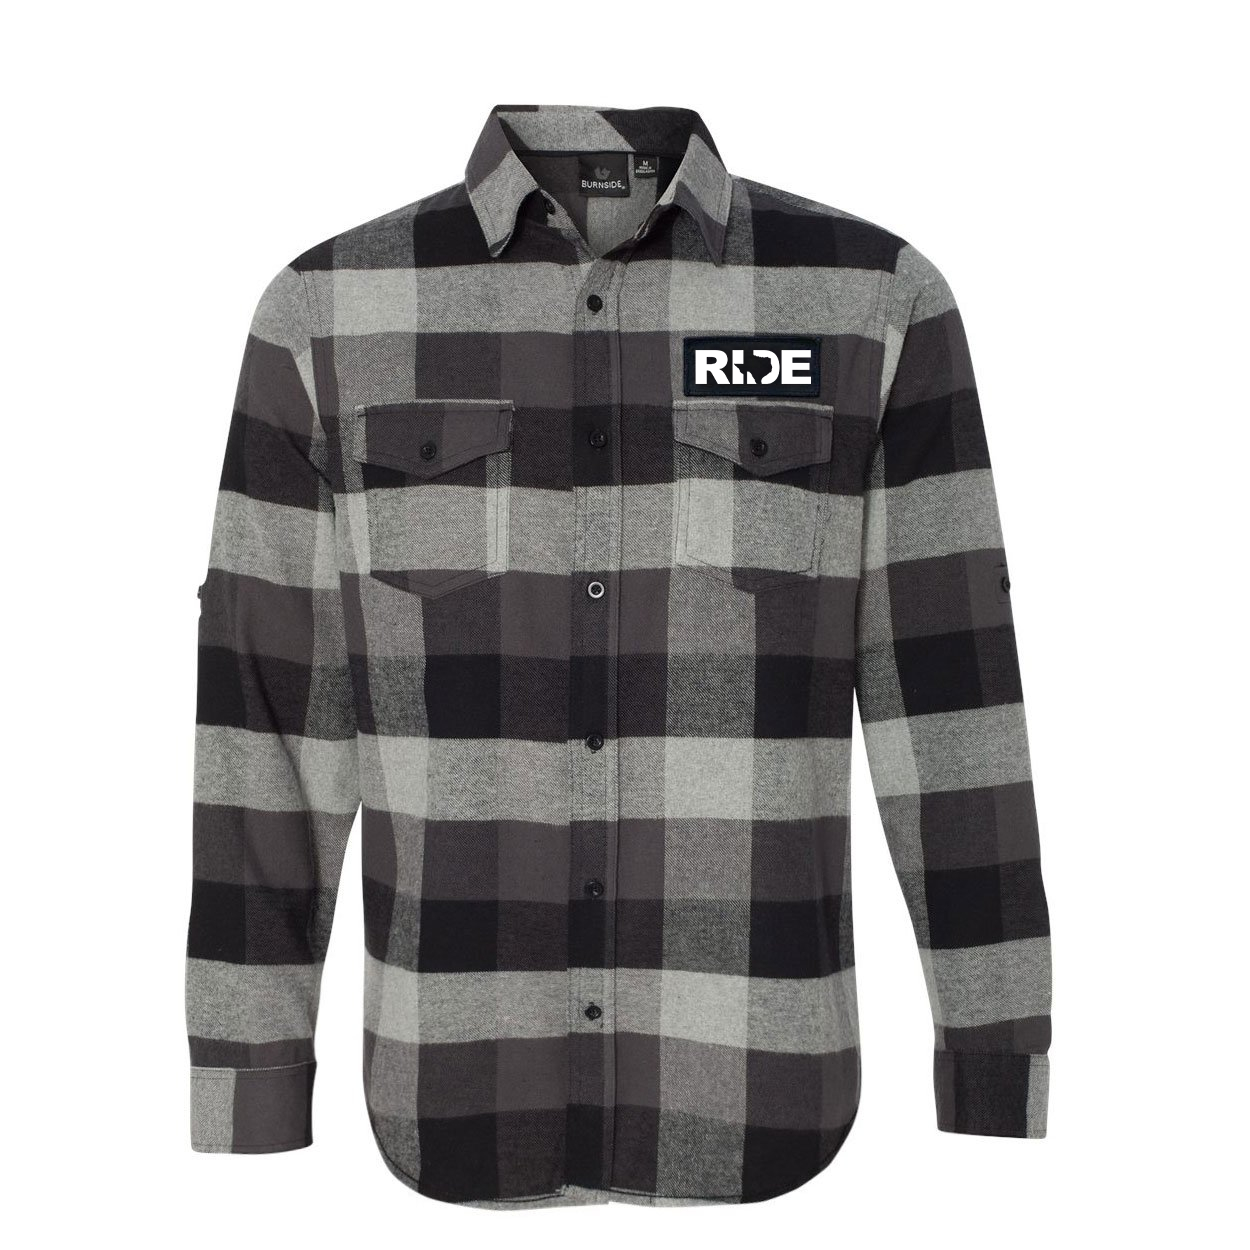 Ride Texas Classic Unisex Long Sleeve Woven Patch Flannel Shirt Black/Gray (White Logo)